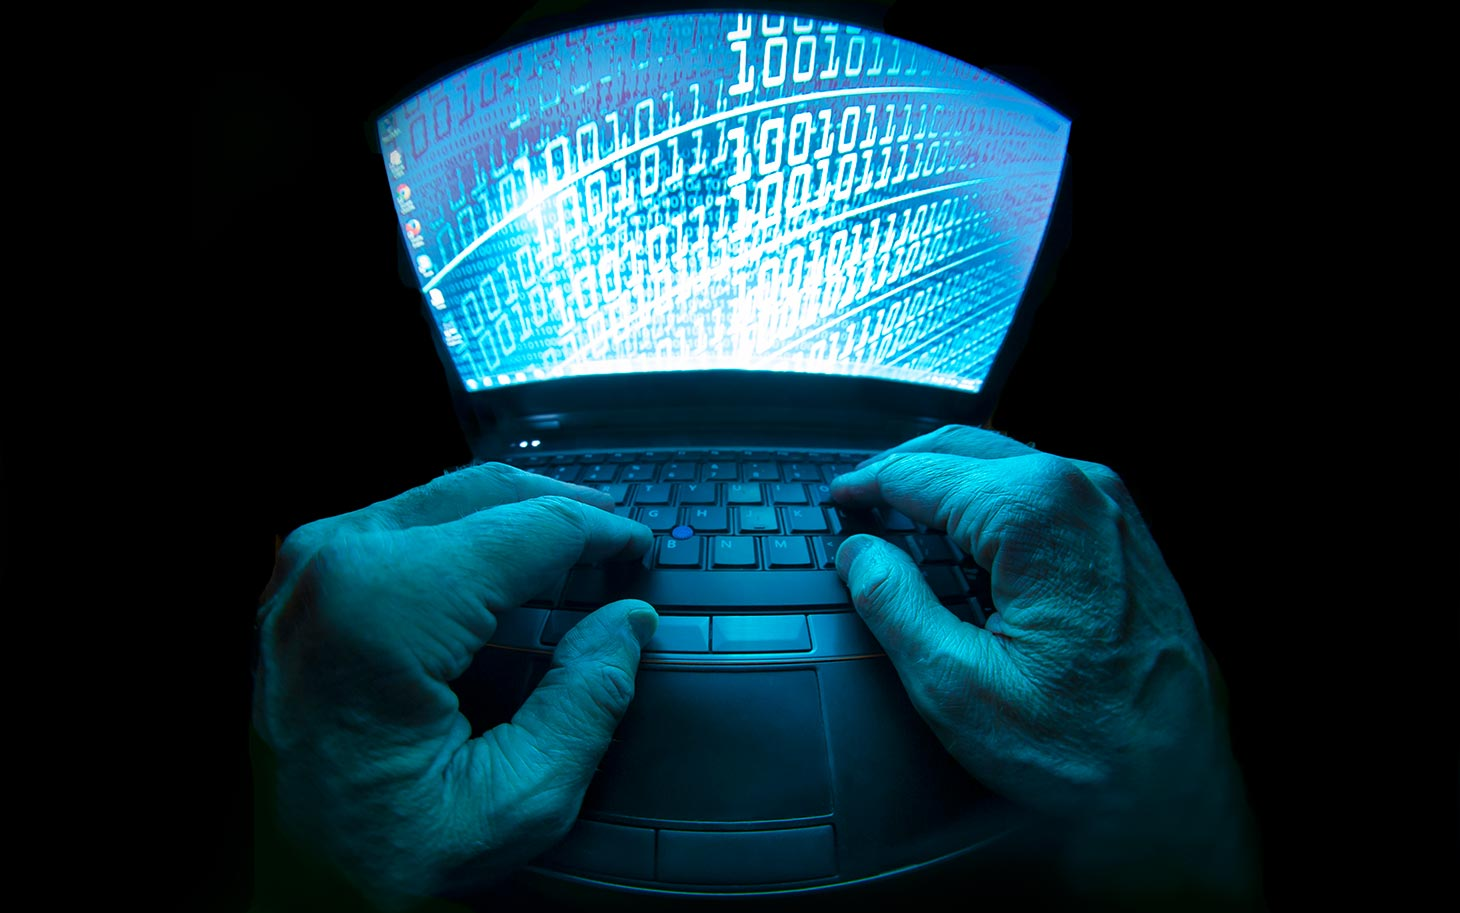 UK cybercrime attacks